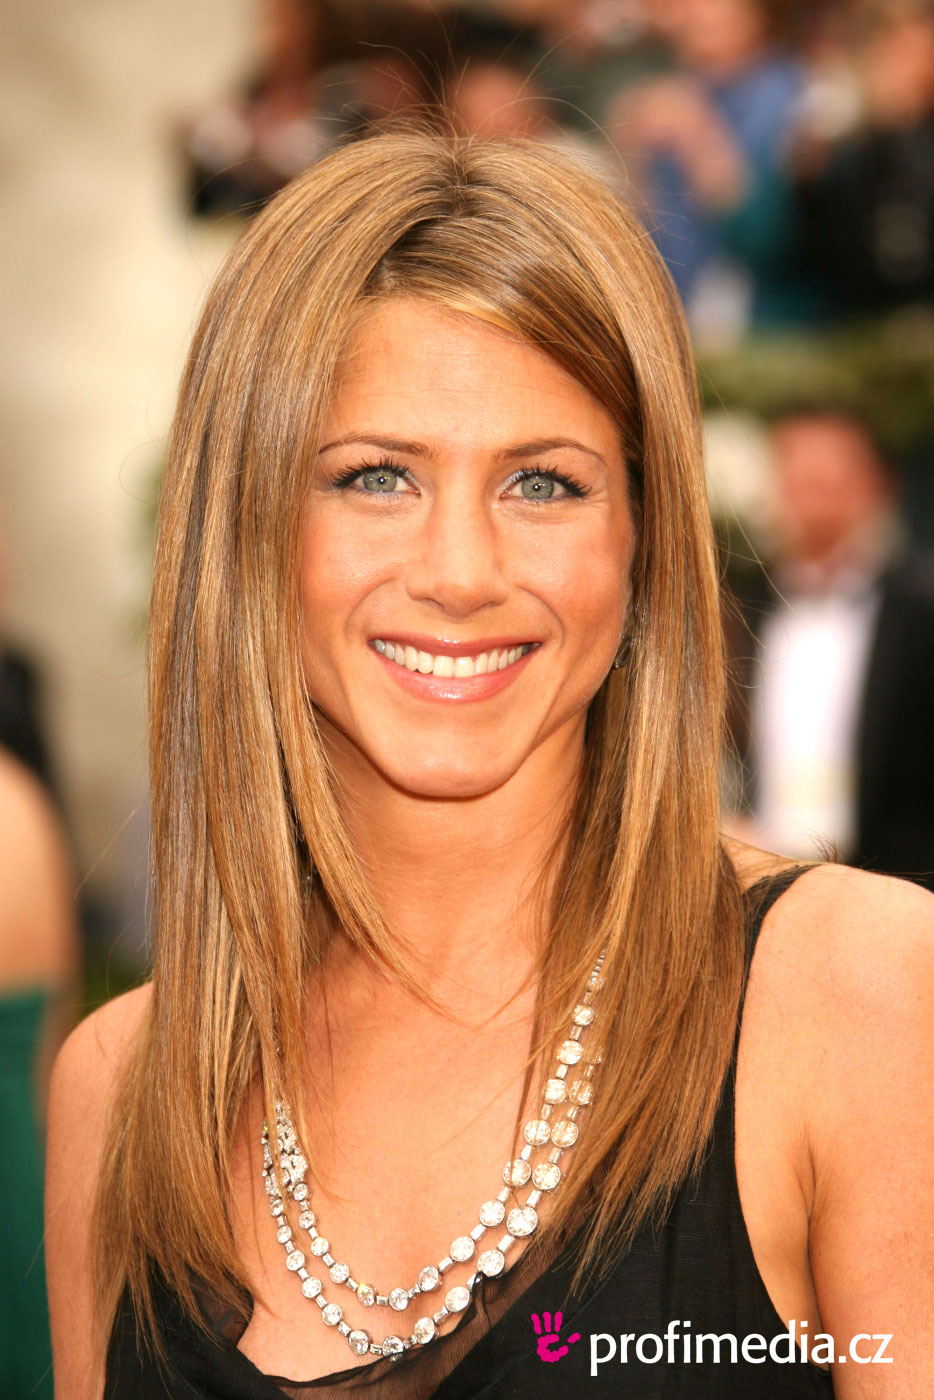 Jennifer Aniston's Best And Worst Hairstyles - PolyTrendy